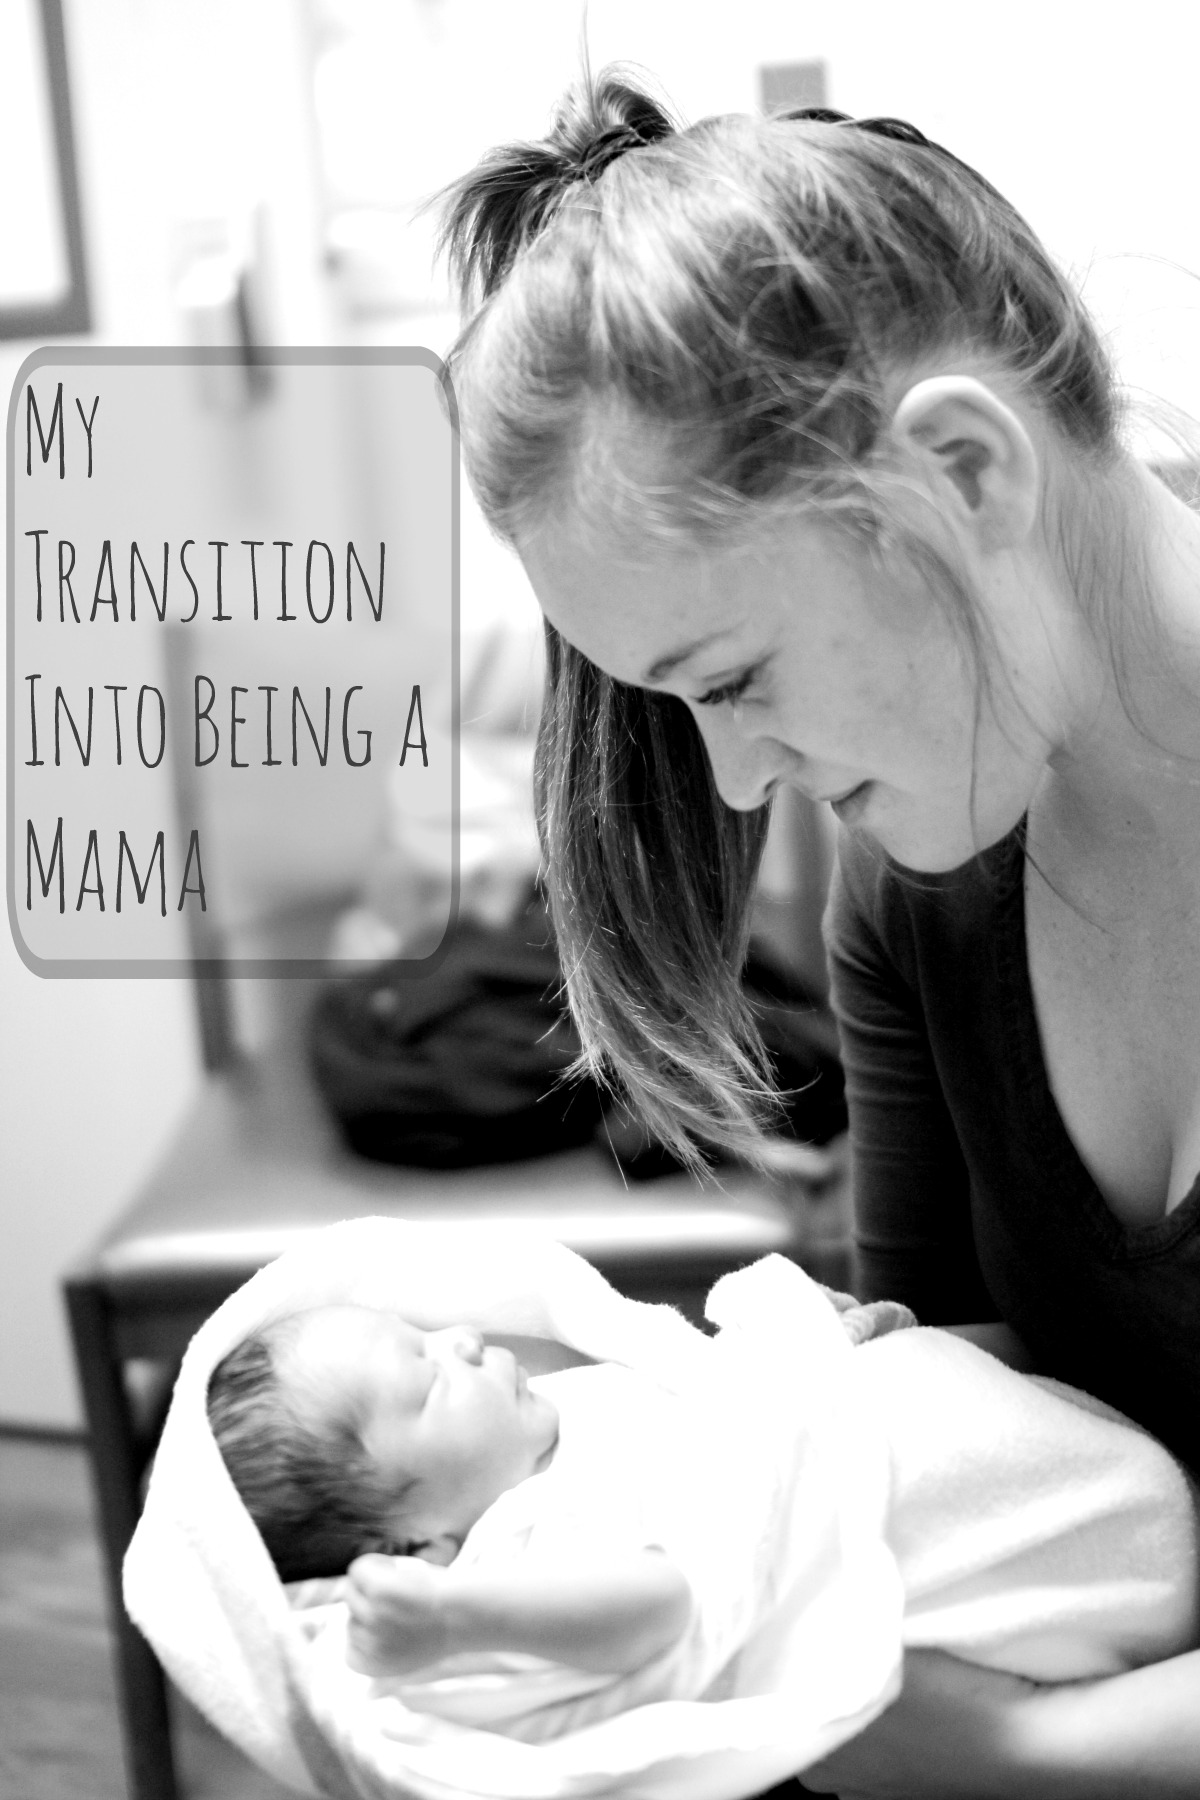 My Transition Into Being a Mama